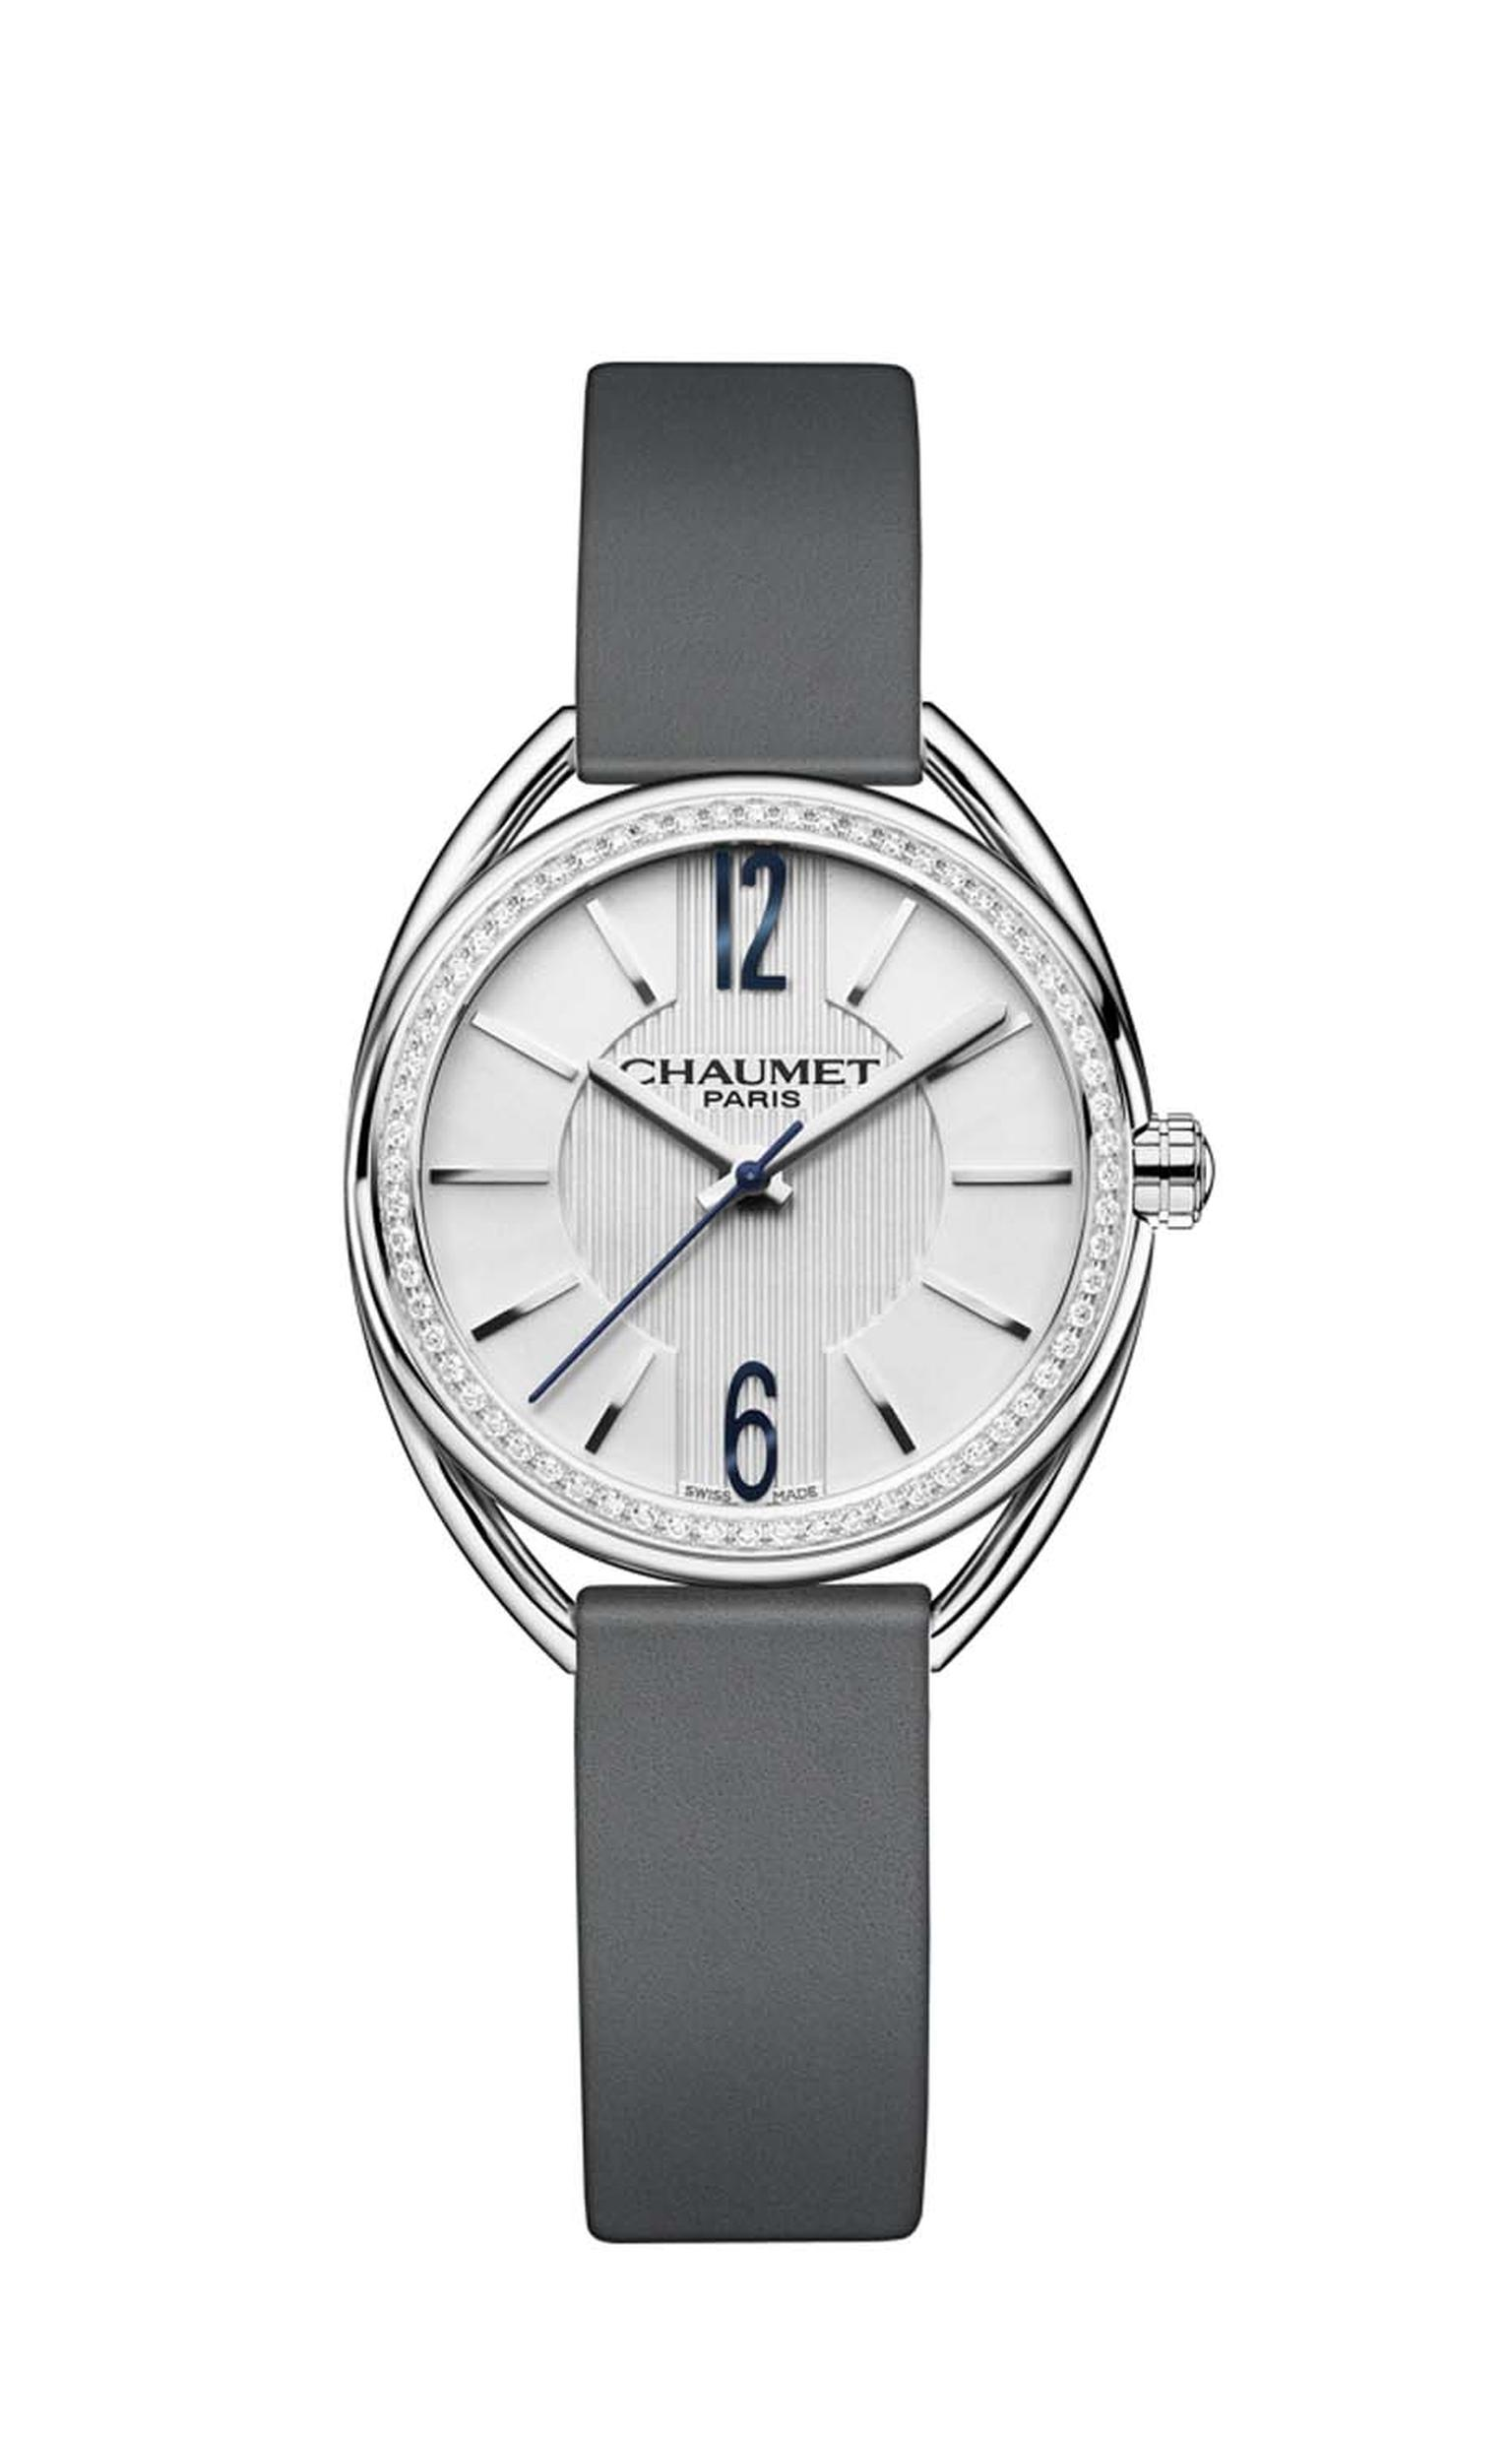 The 27mm Chaumet Liens watch in stainless steel version is enhanced with 56 brilliant-cut diamonds on the bezel, and the white dial, like a beautifully starched white shirt, features vertical pleats in the centre (£4,650).